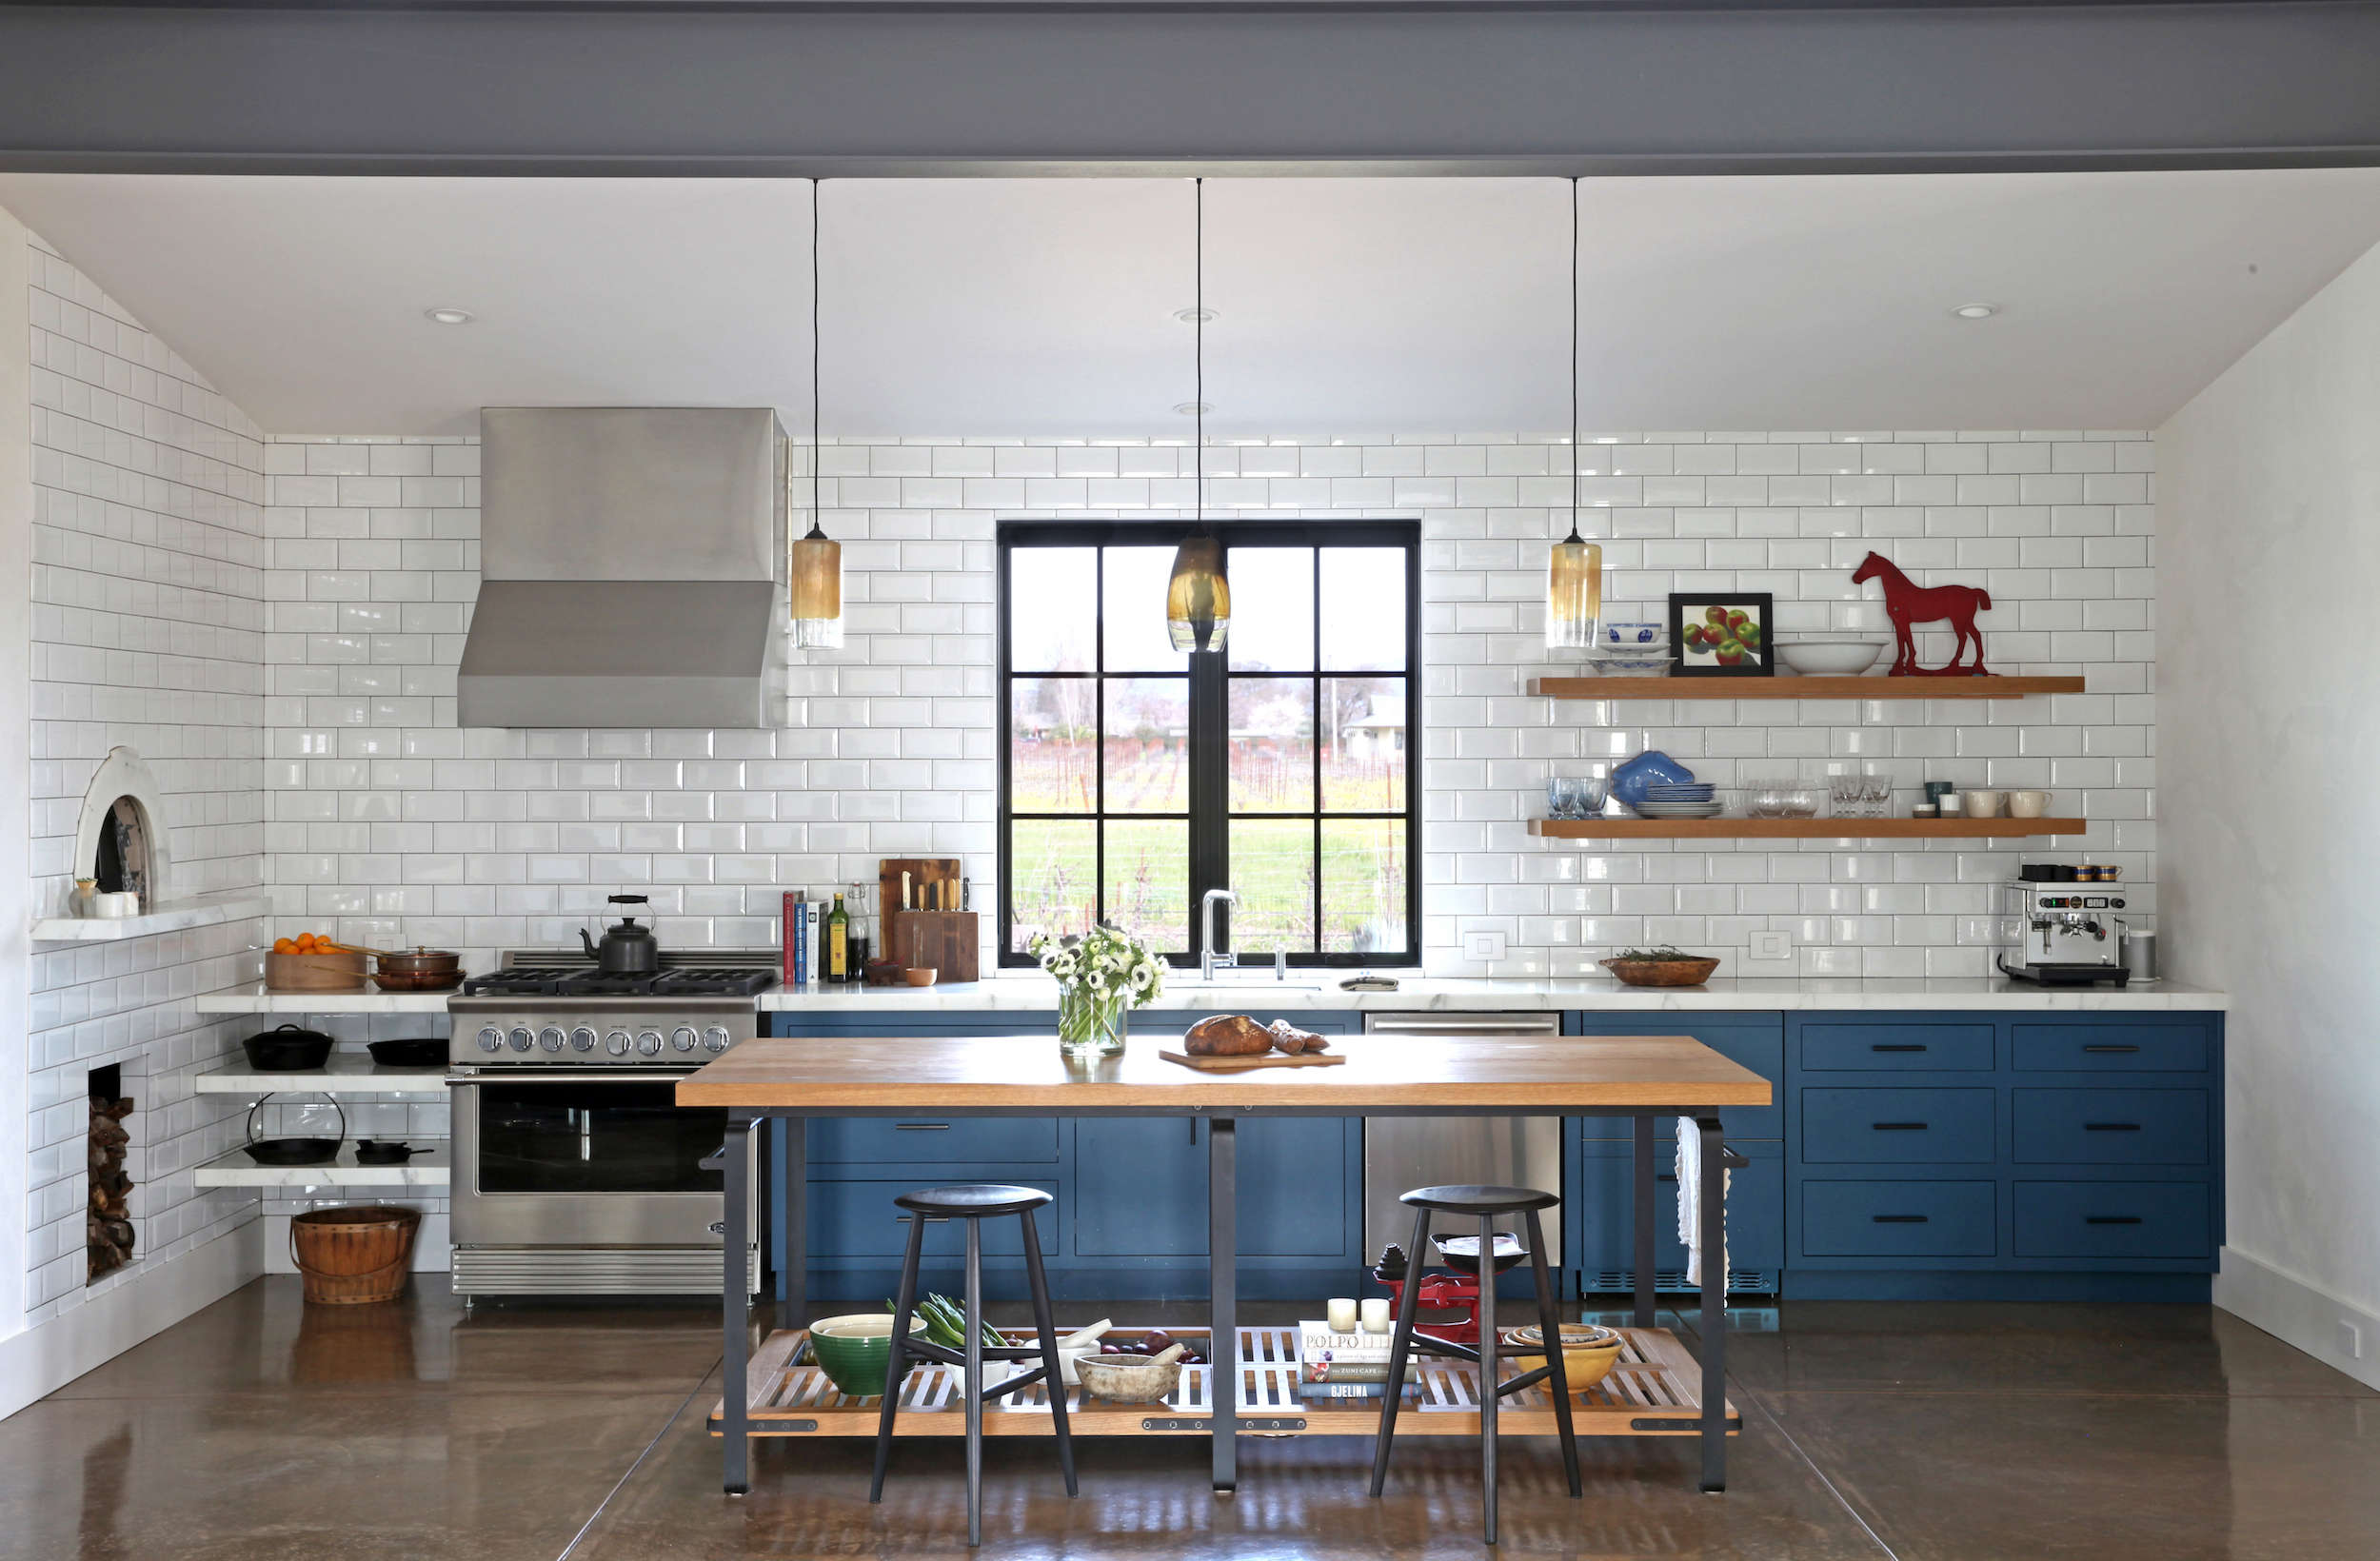 Tile Flooring Behing Kitchen Island